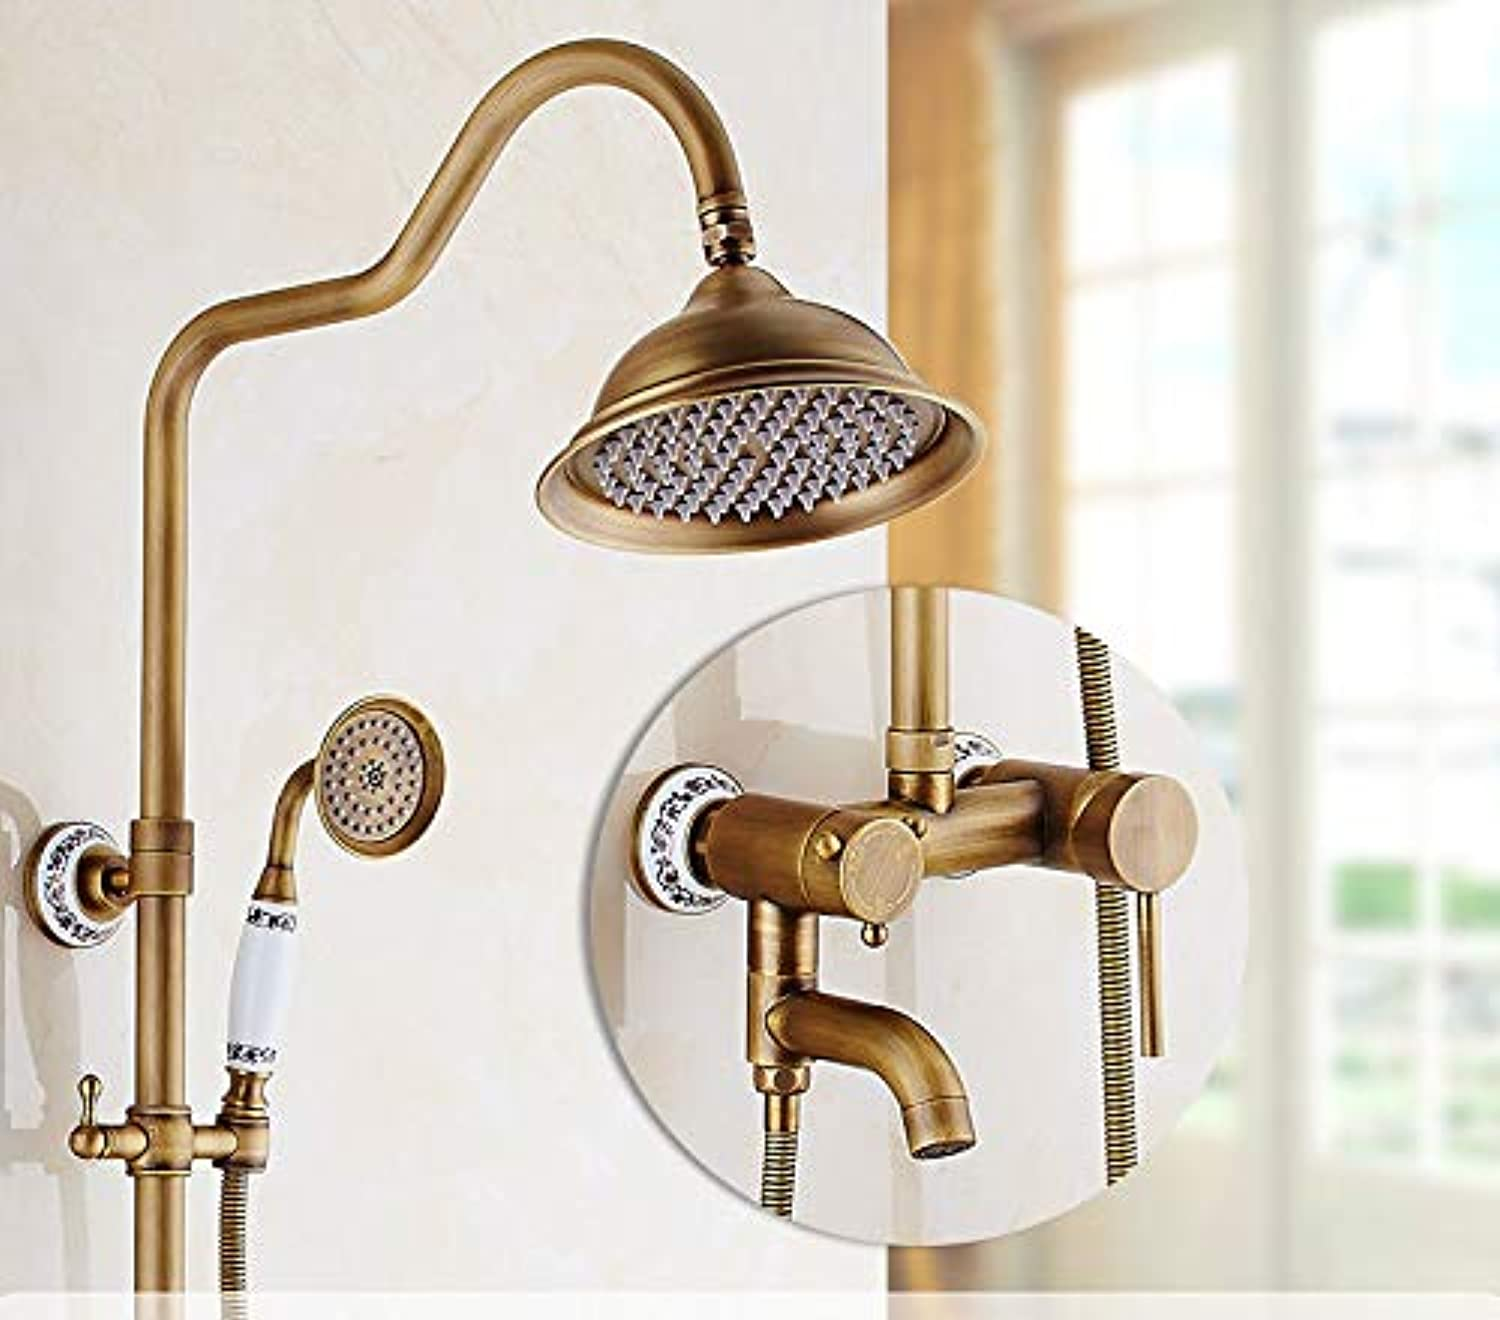 Hlluya Professional Sink Mixer Tap Kitchen Faucet The copper shower set color bathroom waterfall shower, hot and cold water tap.